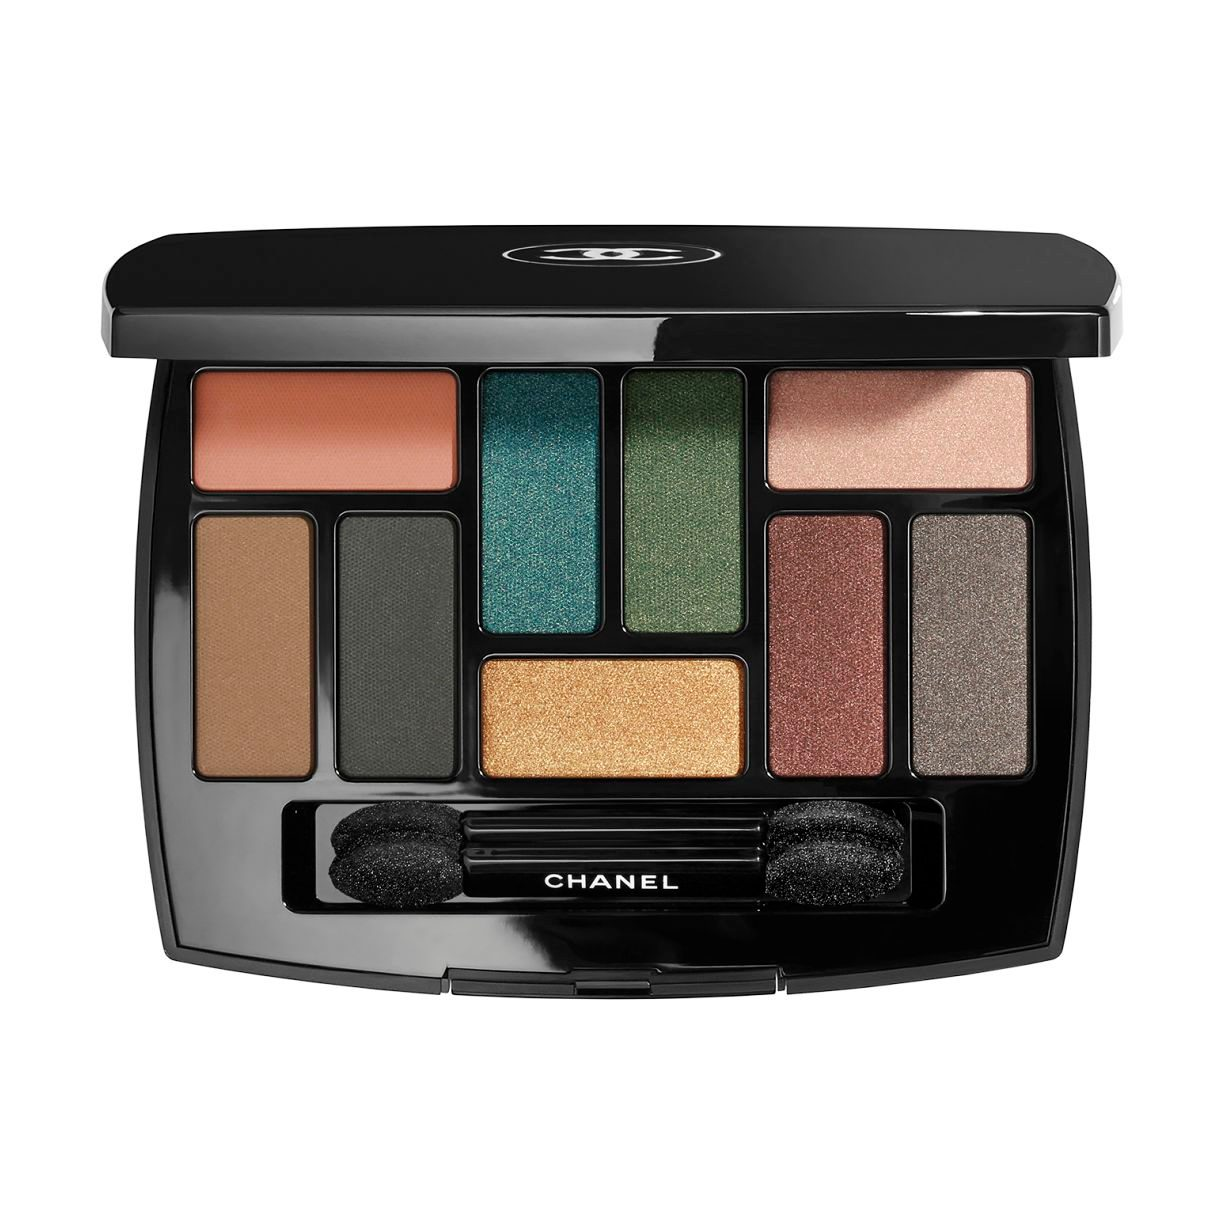 LES 9 OMBRES EXCLUSIVE CREATION EYESHADOW COLLECTION 6.3G